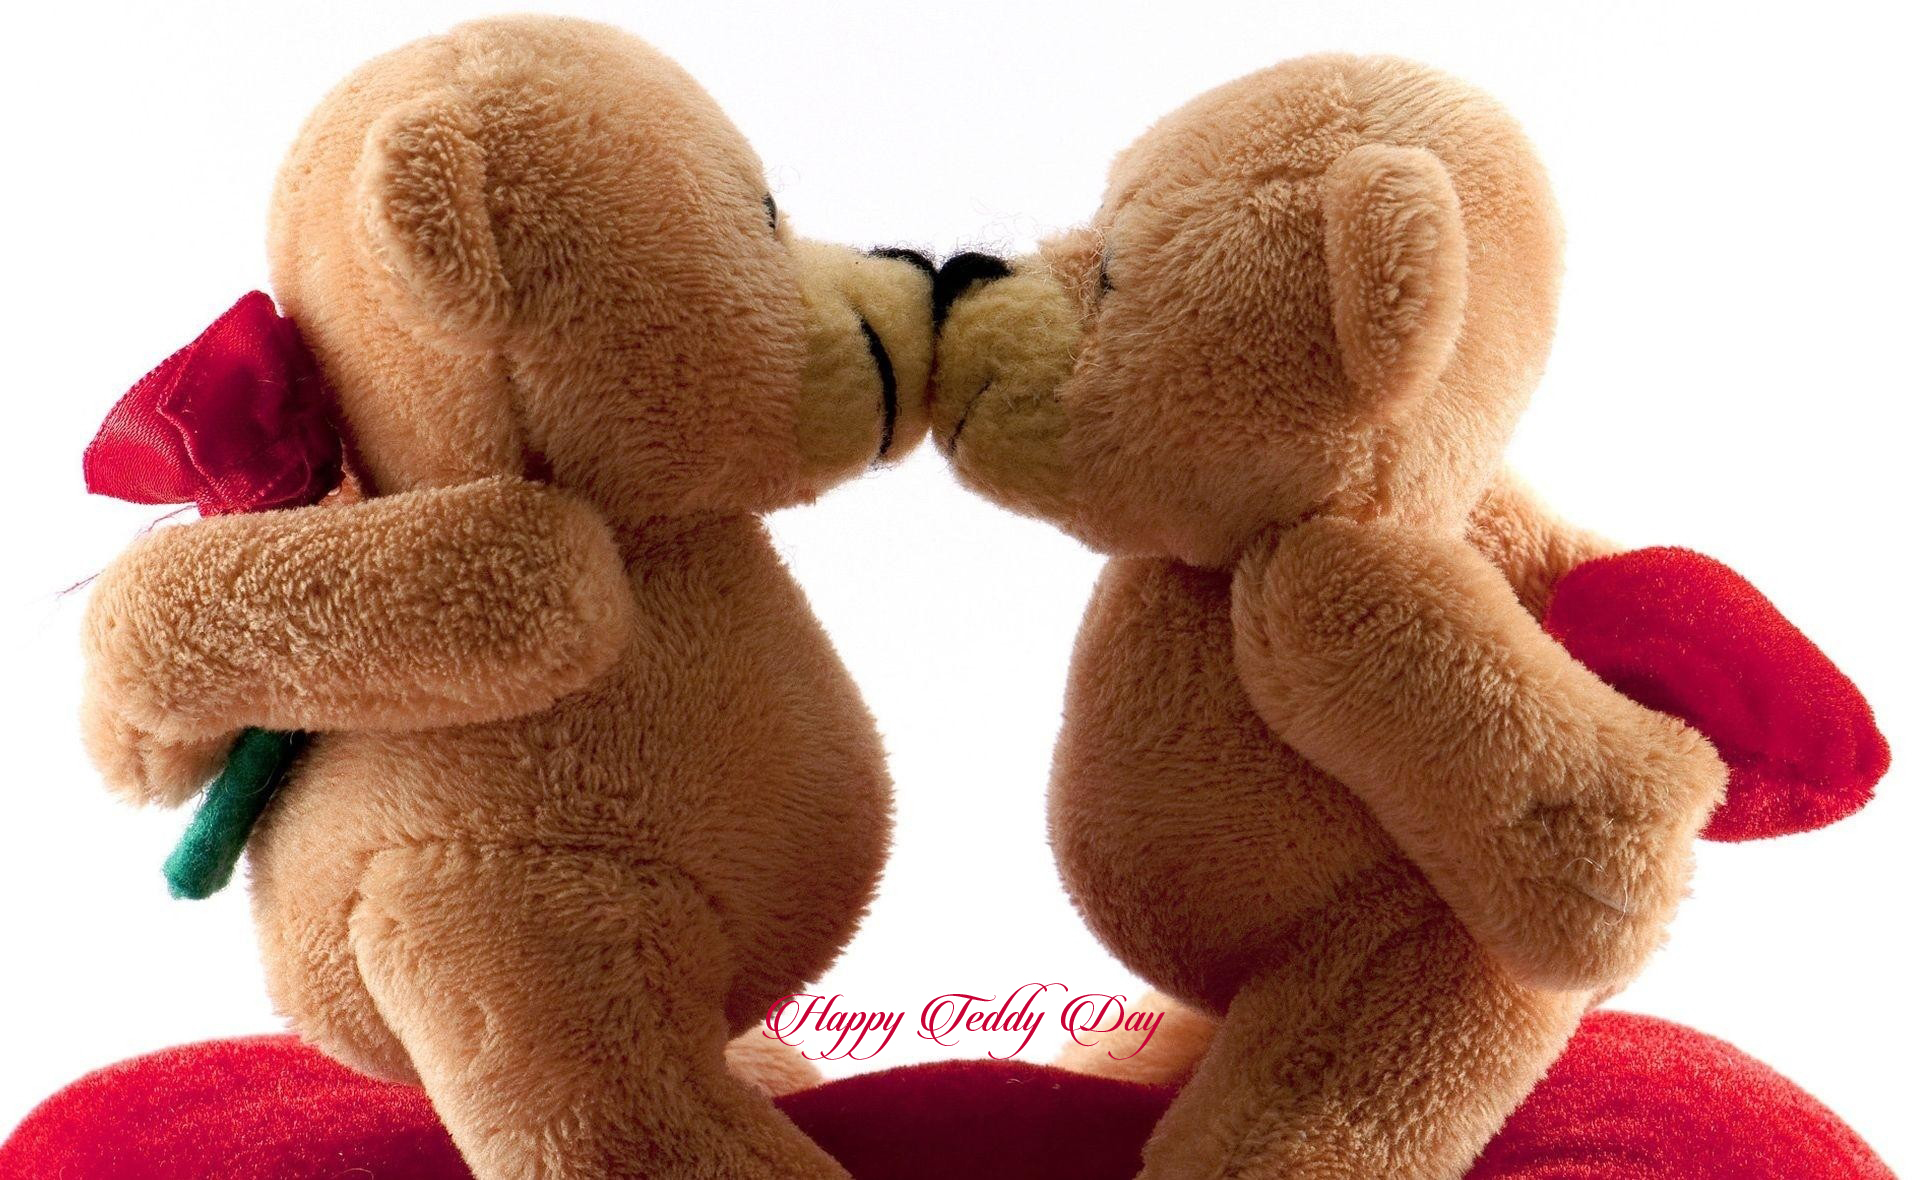 Loverly Teddy Day Status & Messages for Whatsapp & Facebook